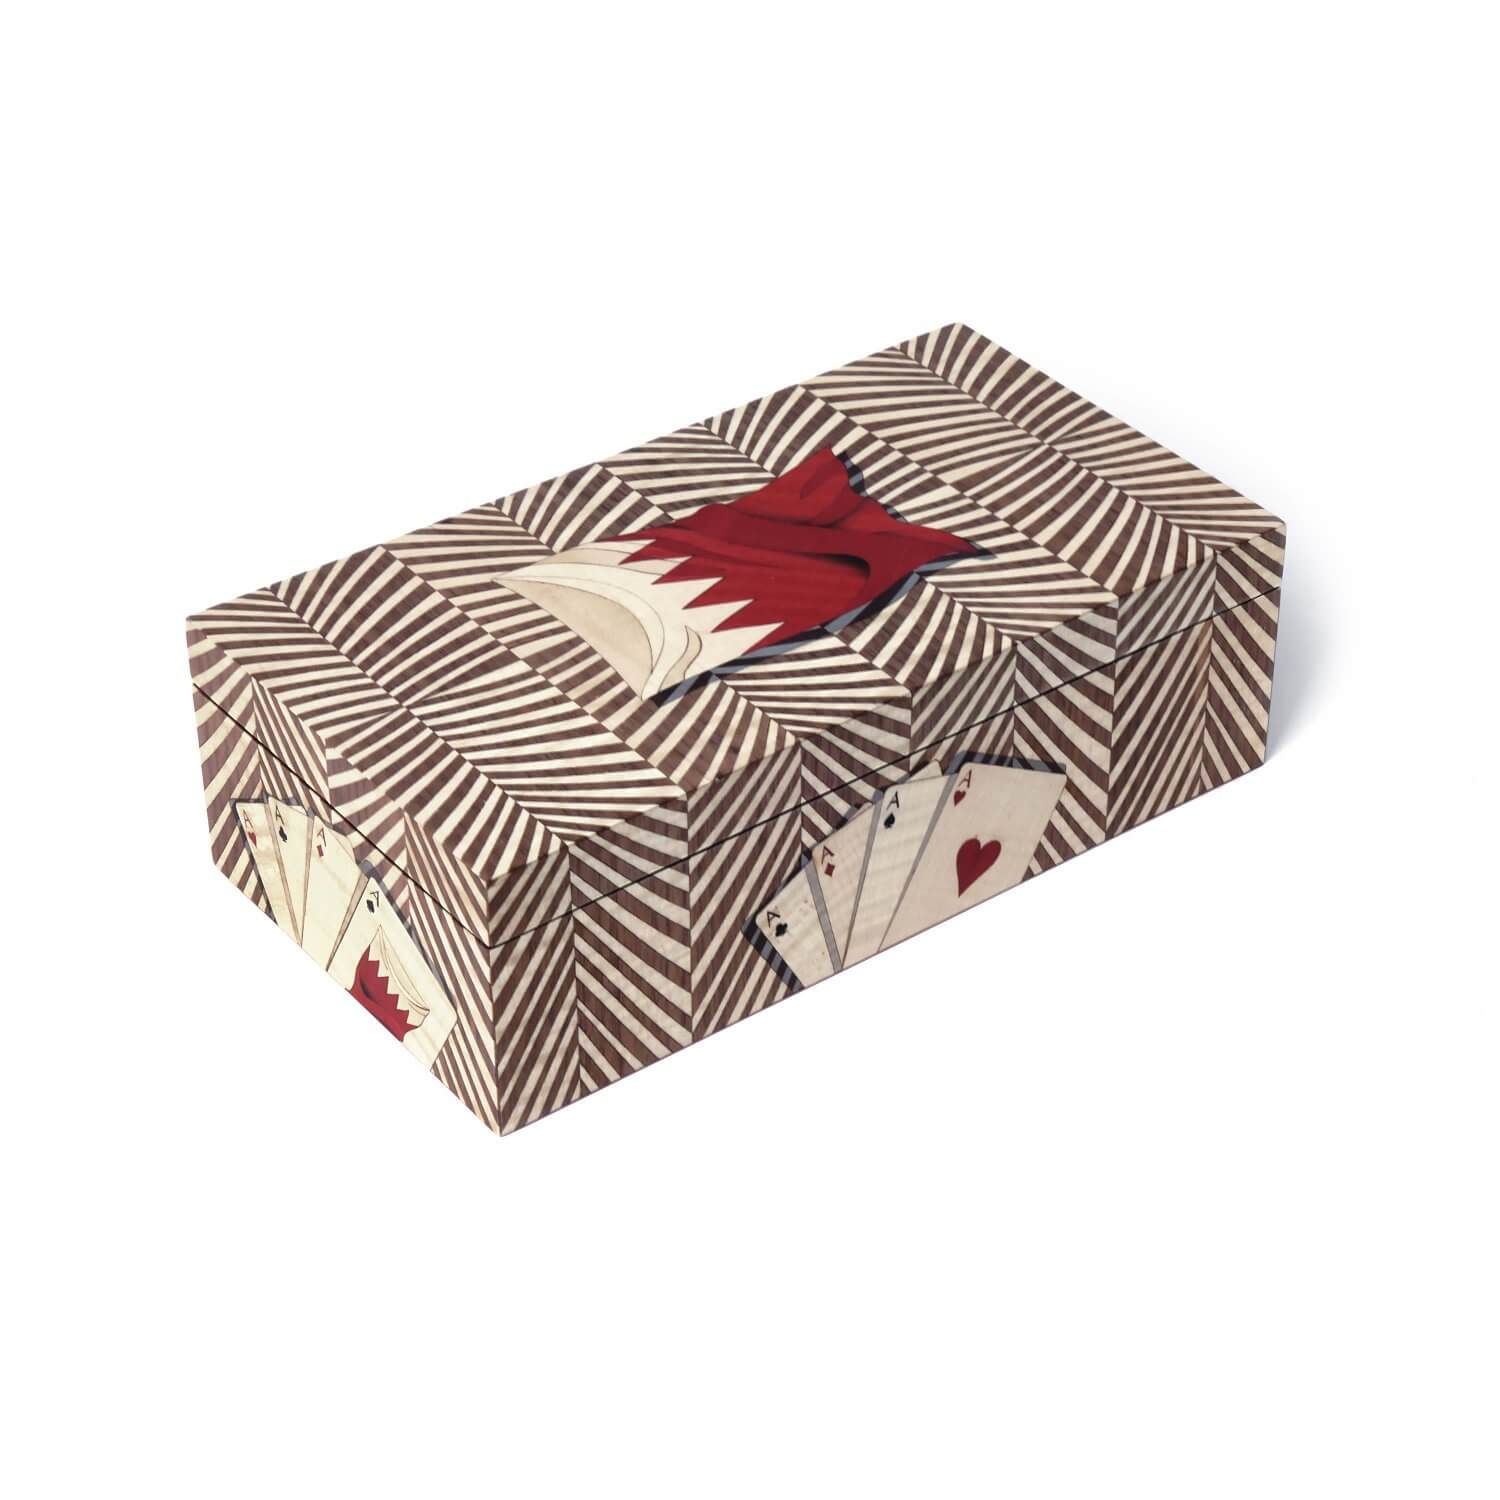 Bespoke red and white marquetry card box design